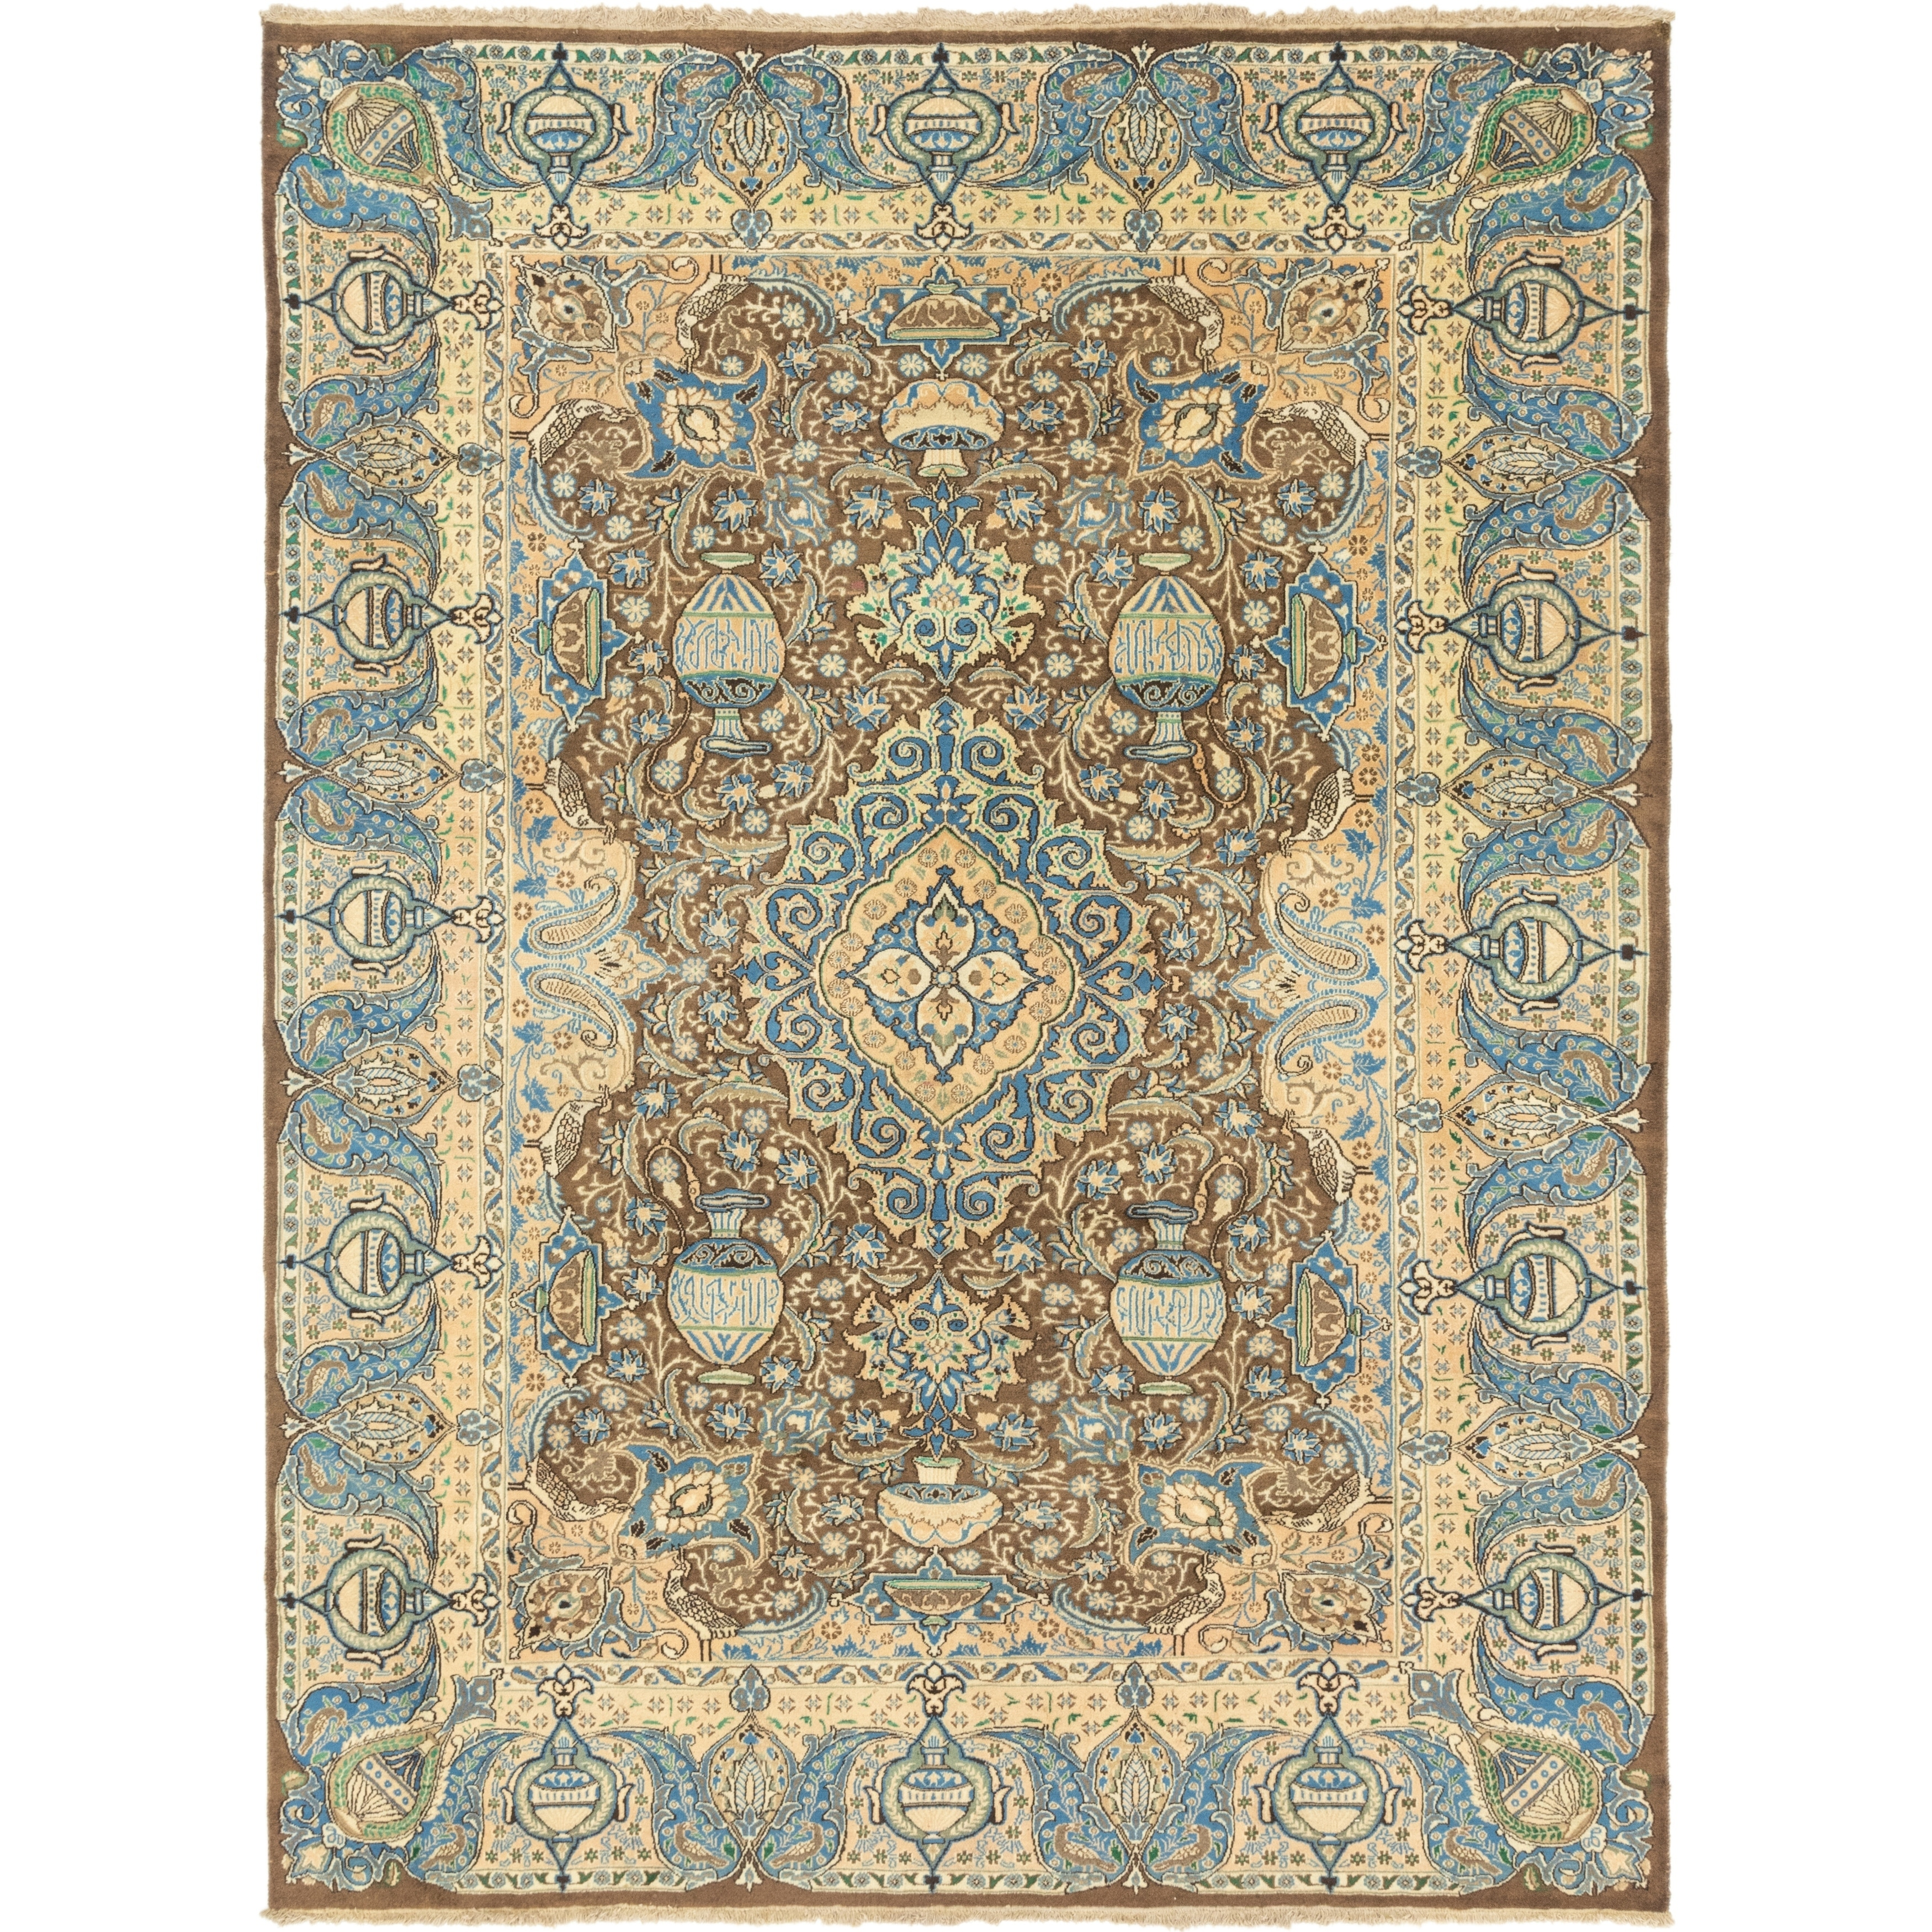 Hand Knotted Kashmar Semi Antique Wool Area Rug - 9 8 x 12 7 (Brown - 9 8 x 12 7)